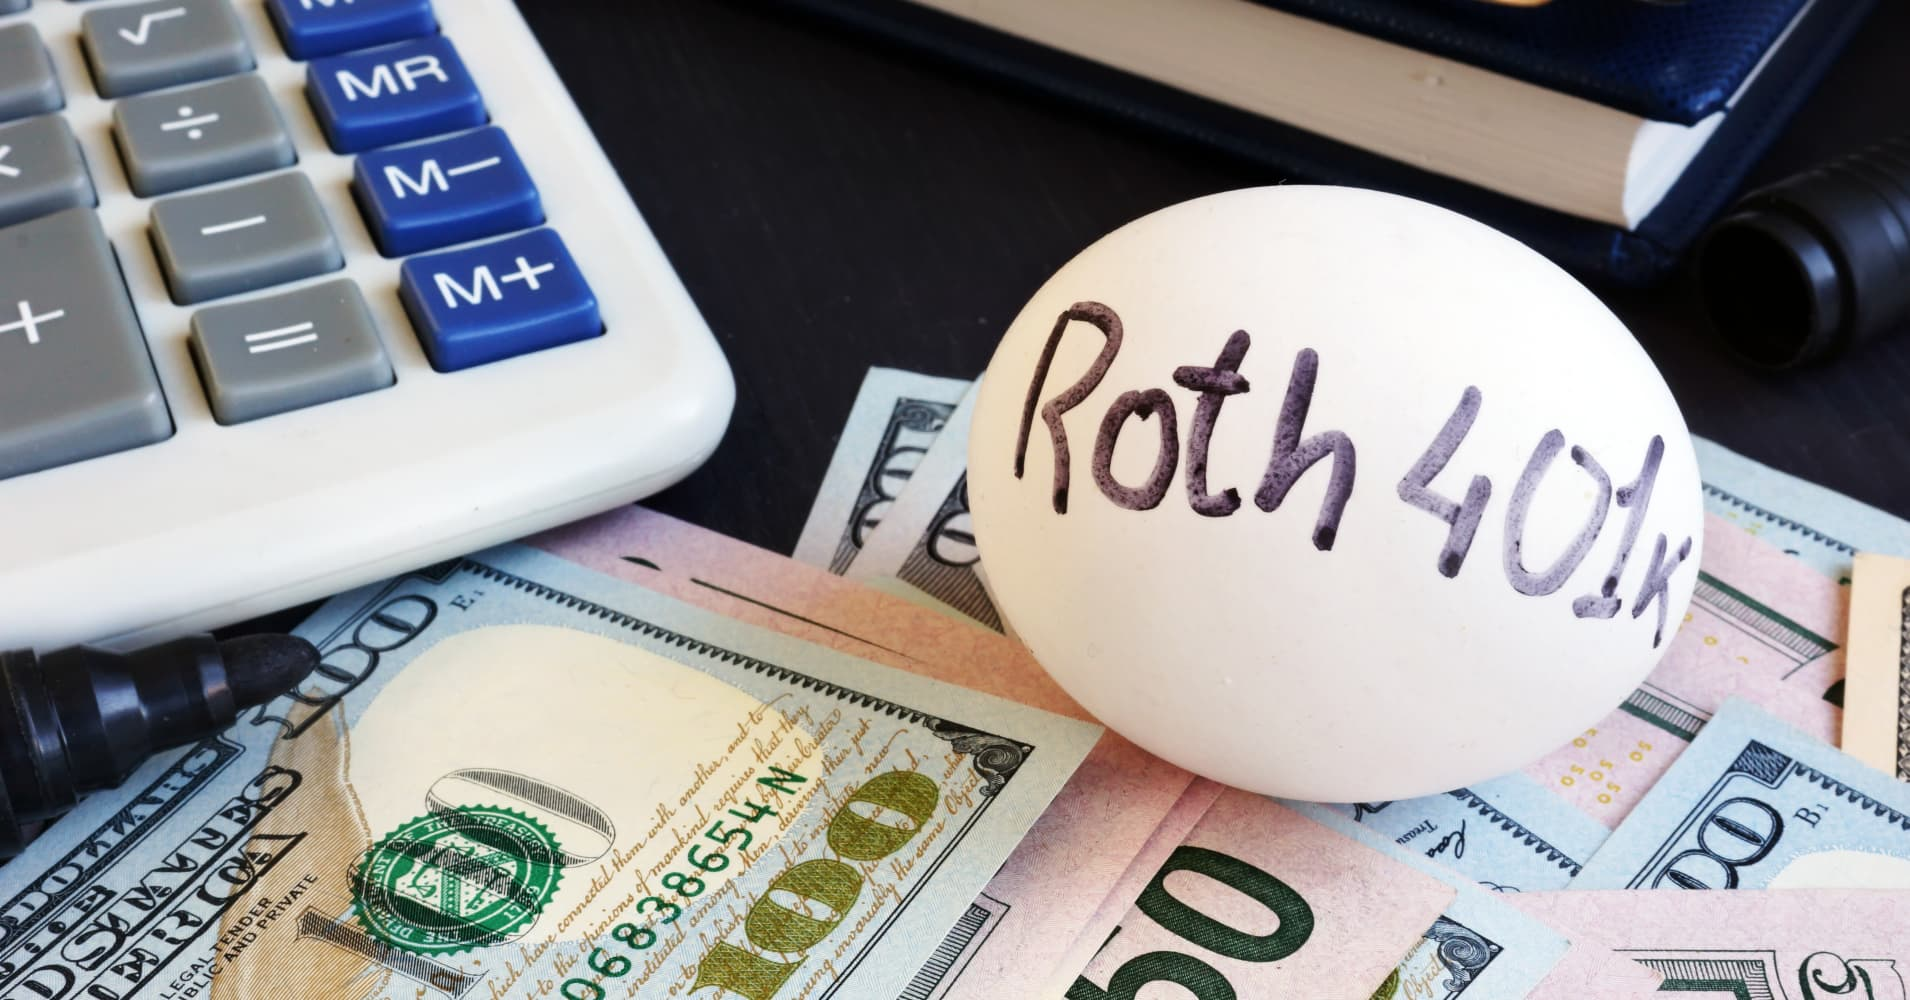 A Roth 401(k) offers tax advantages. Here's how it works